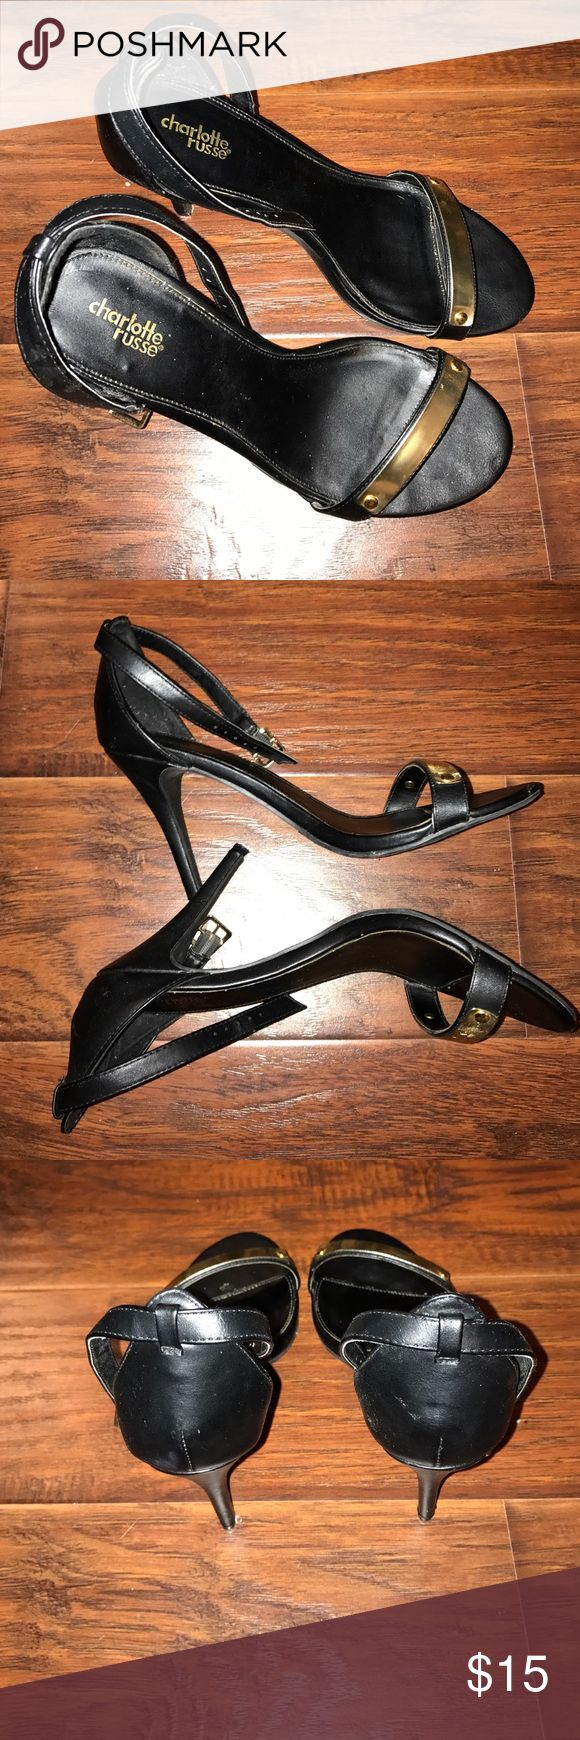 Size 10 black heels from Charlotte Russe Black and gold heel with strap around the ankle heals about 3 to 4 inches high. Some wear from normal use. Very cute gold design. Size 10 and brand Charlotte Russe Charlotte Russe Shoes Heels